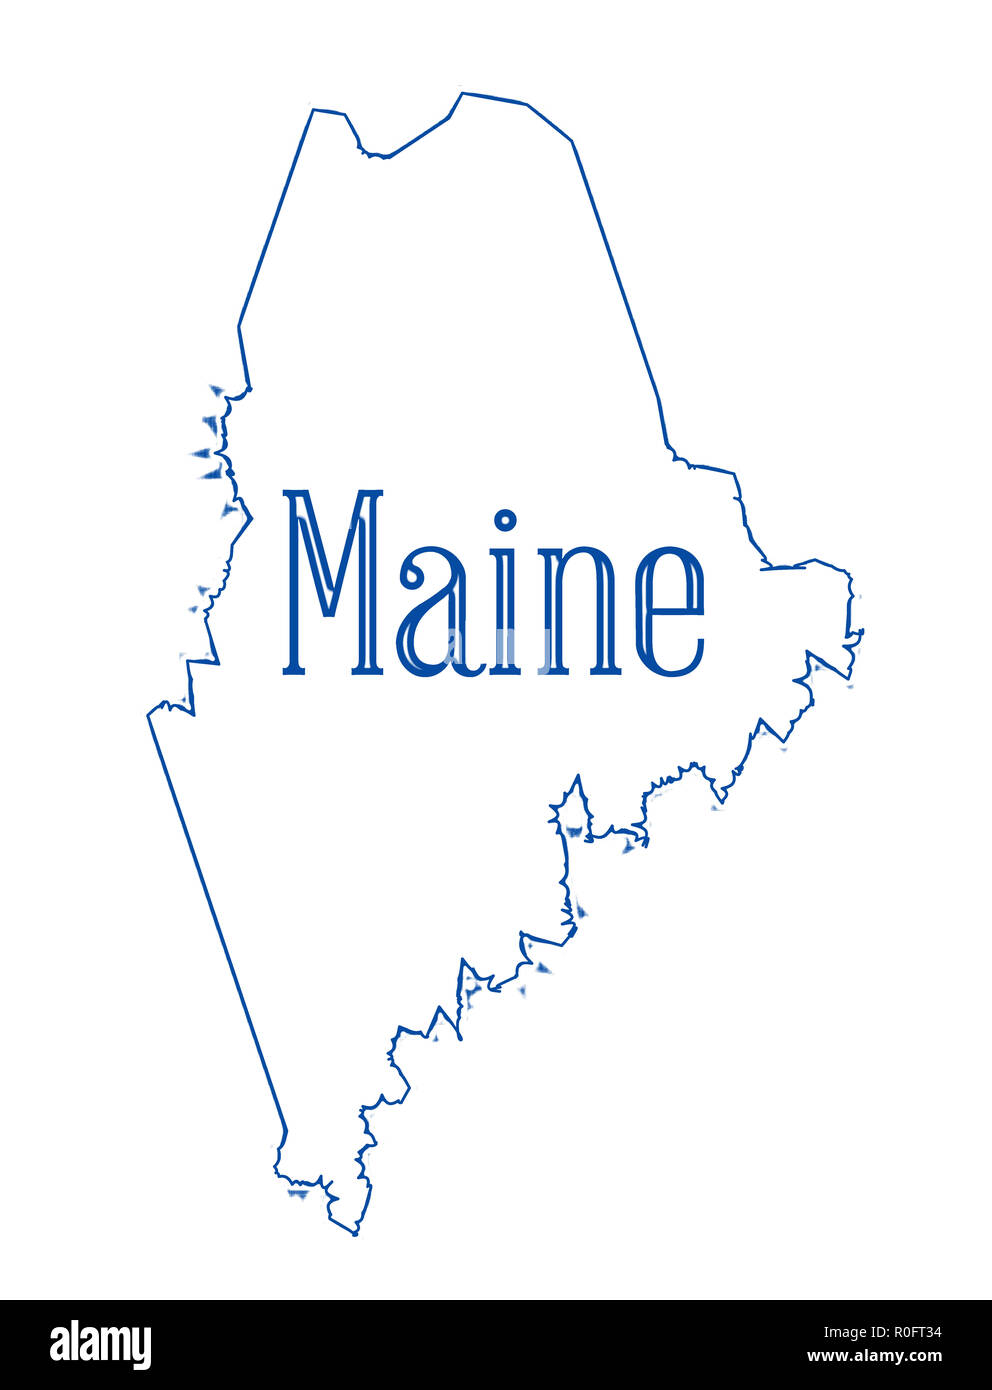 Maine State Map Stock Photos & Maine State Map Stock Images ... on colorado state map, maryland state map, maine forest, kentucky state map, idaho state map, maine political map, maine us map, alaska state map, new hampshire state map, maine flower, united state map, vermont state map, maine product map, nevada state map, washington state map, california state map, maine counties map, maine flag, rhode island state map, missouri state map,